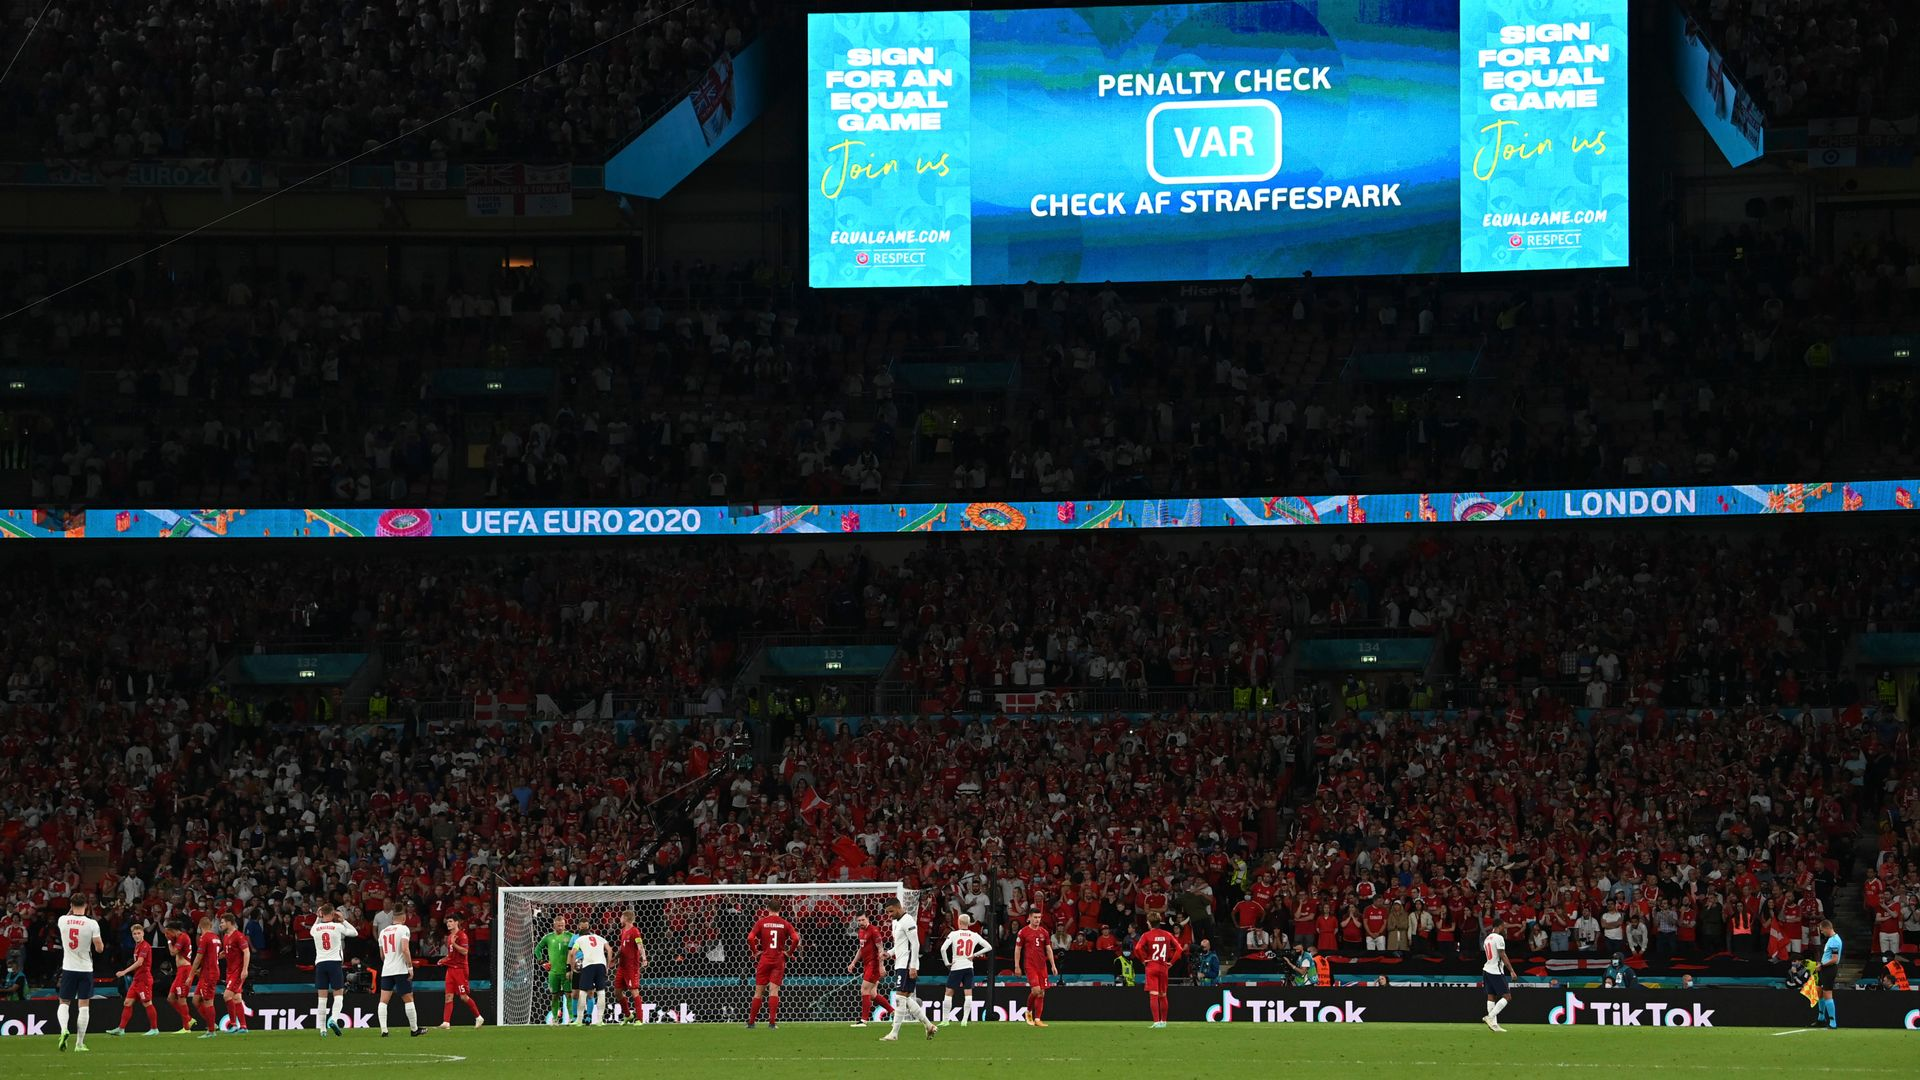 World Cup 2022: VAR to be used in qualifiers in Europe from next month |